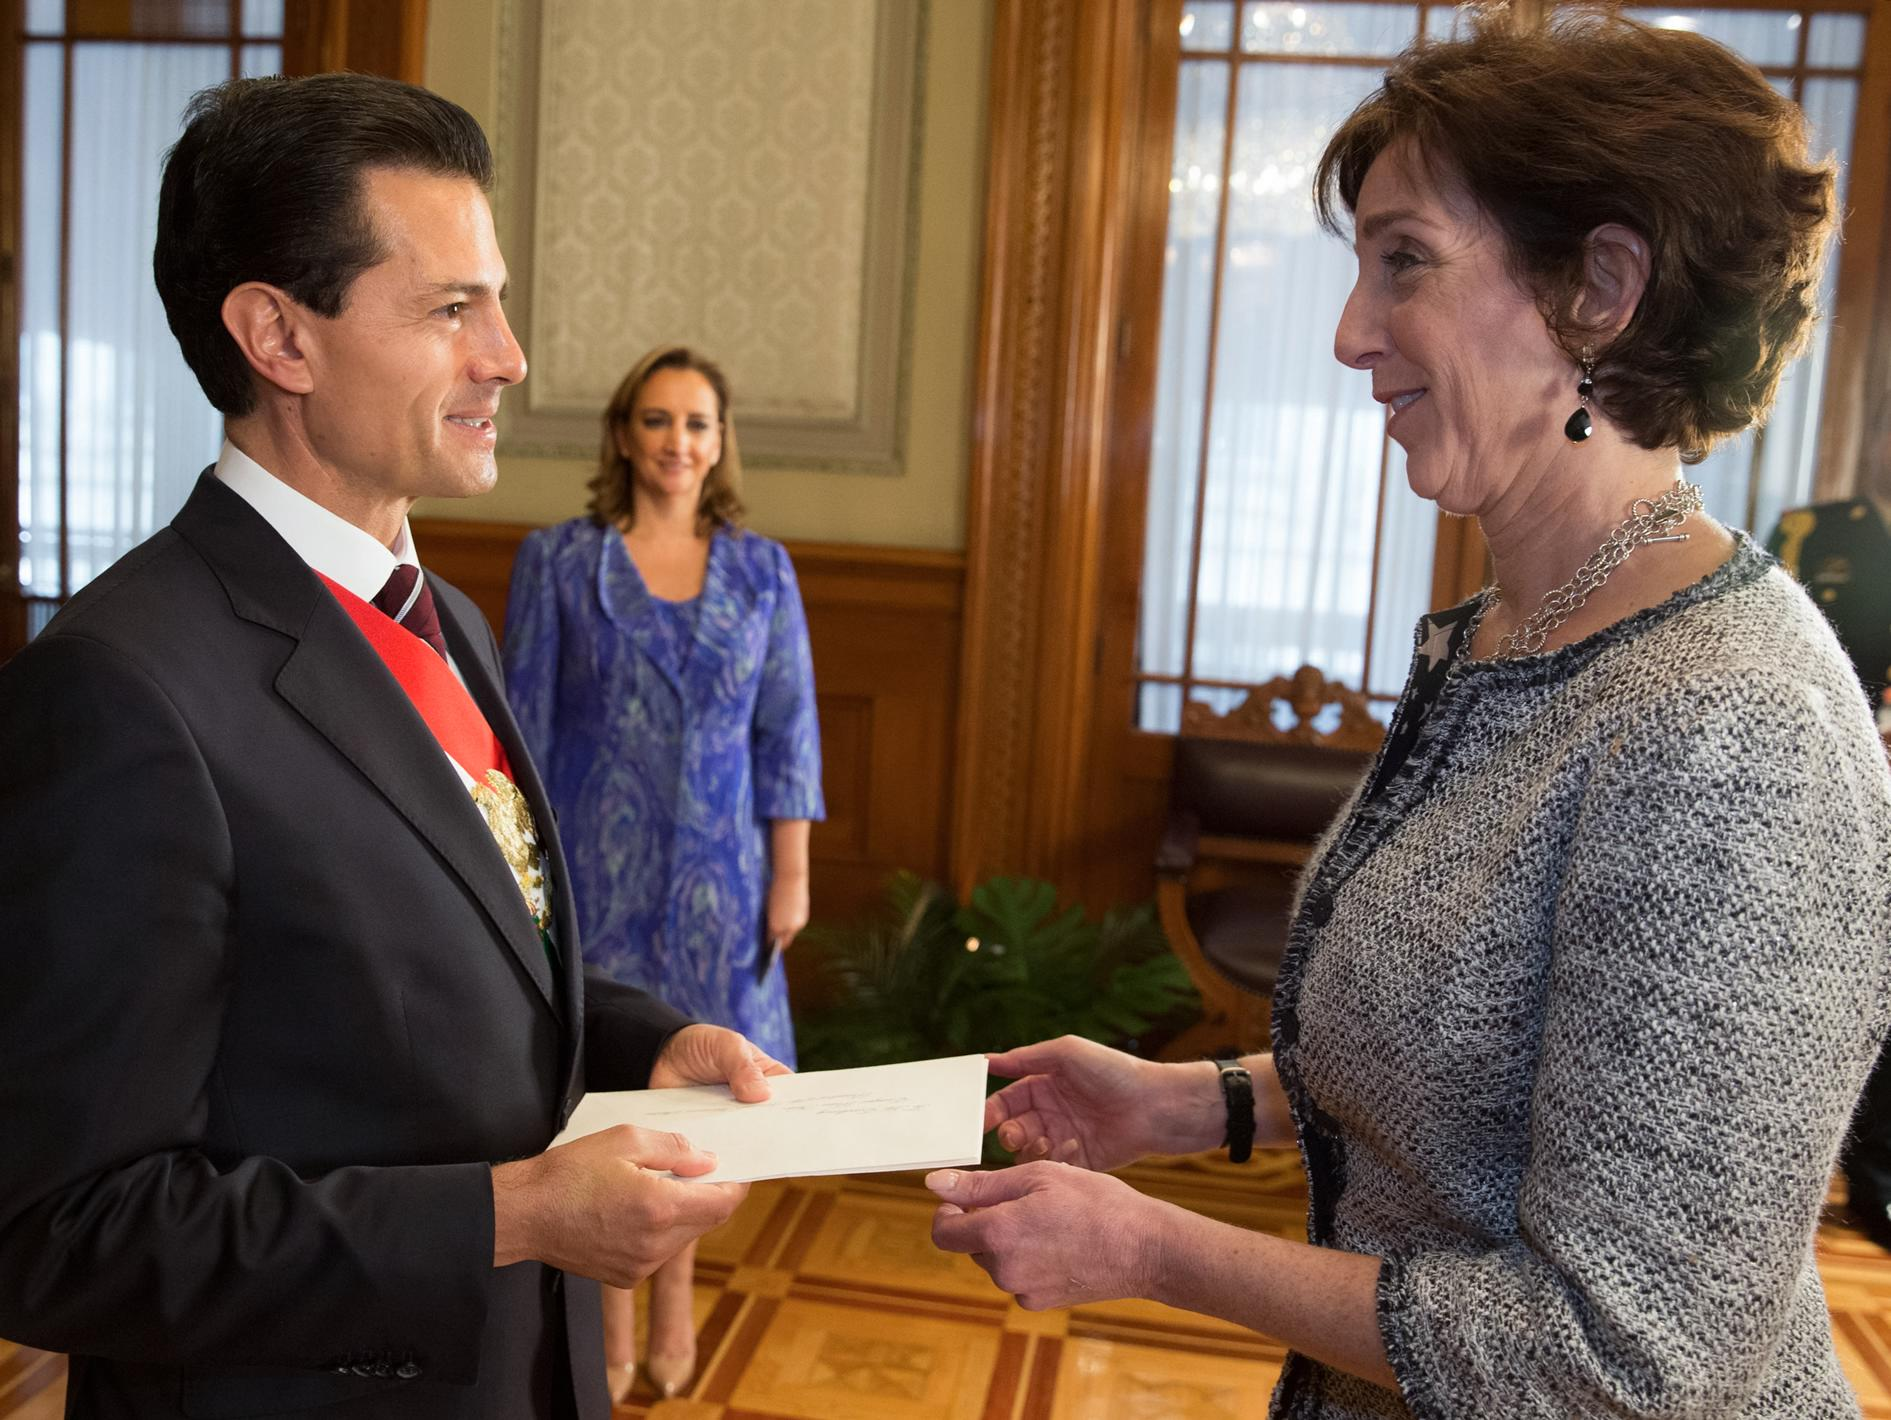 The president receives the credentials of US Ambassador Roberta Jacobson.